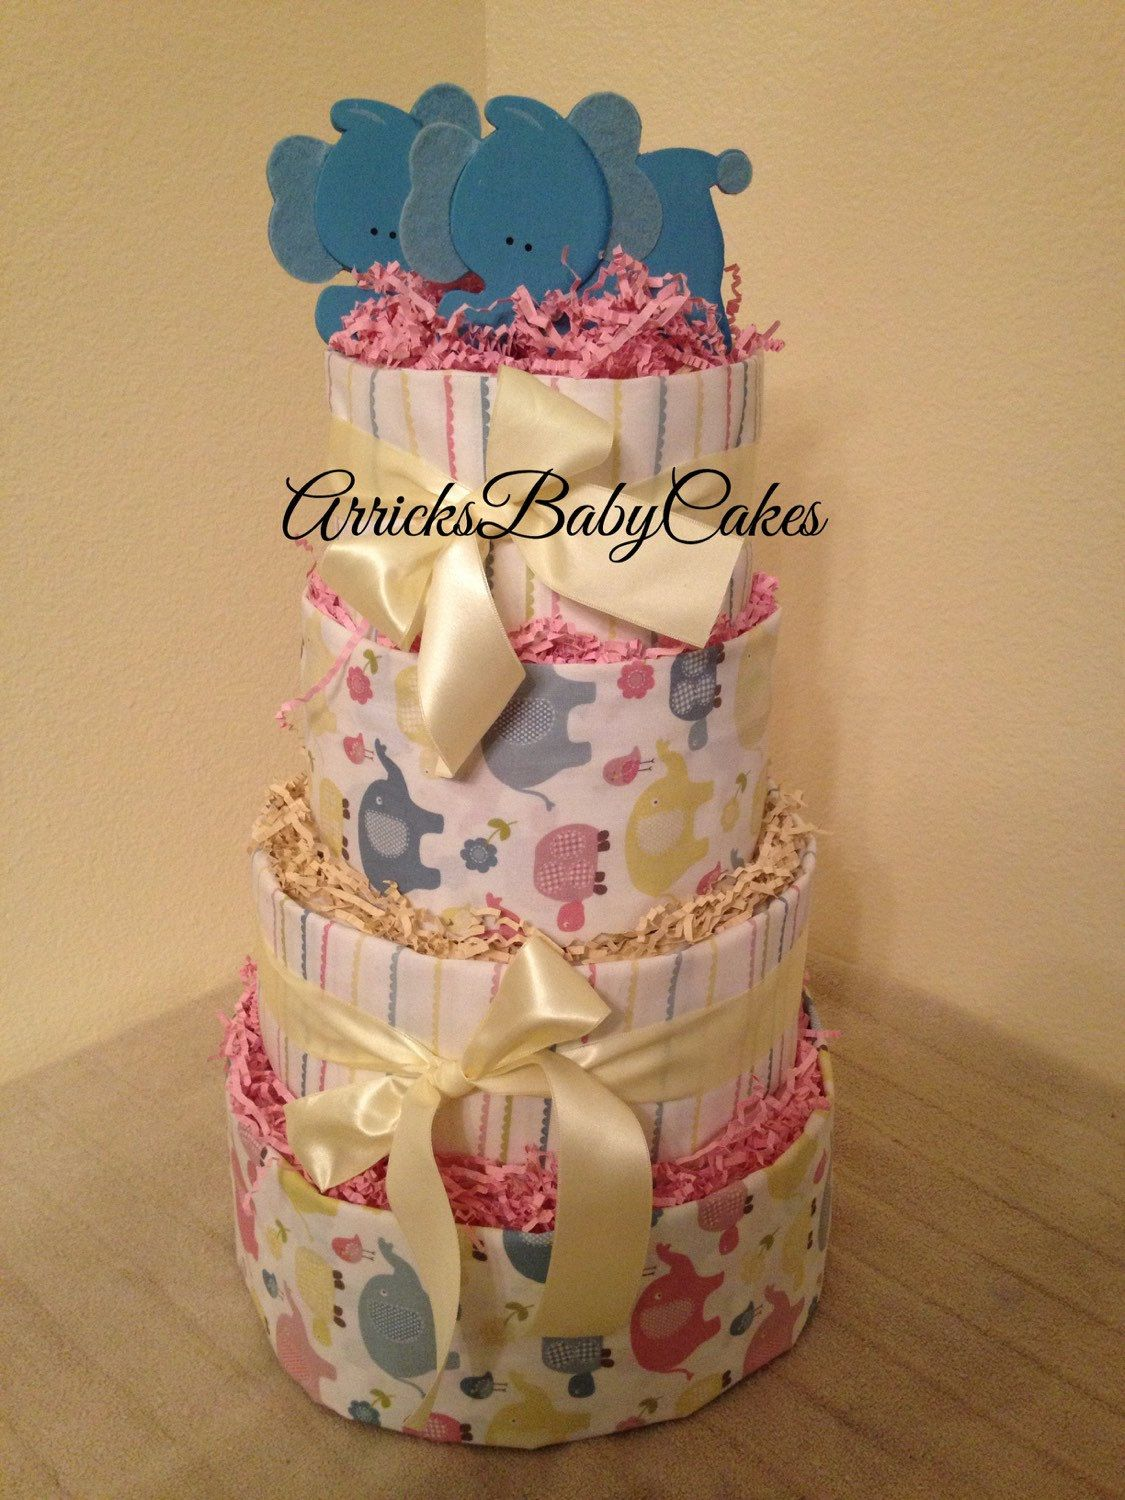 The Colorful Elephants 4 Tier Baby Girl Diaper Cake by ArricksBabyCakes on Etsy